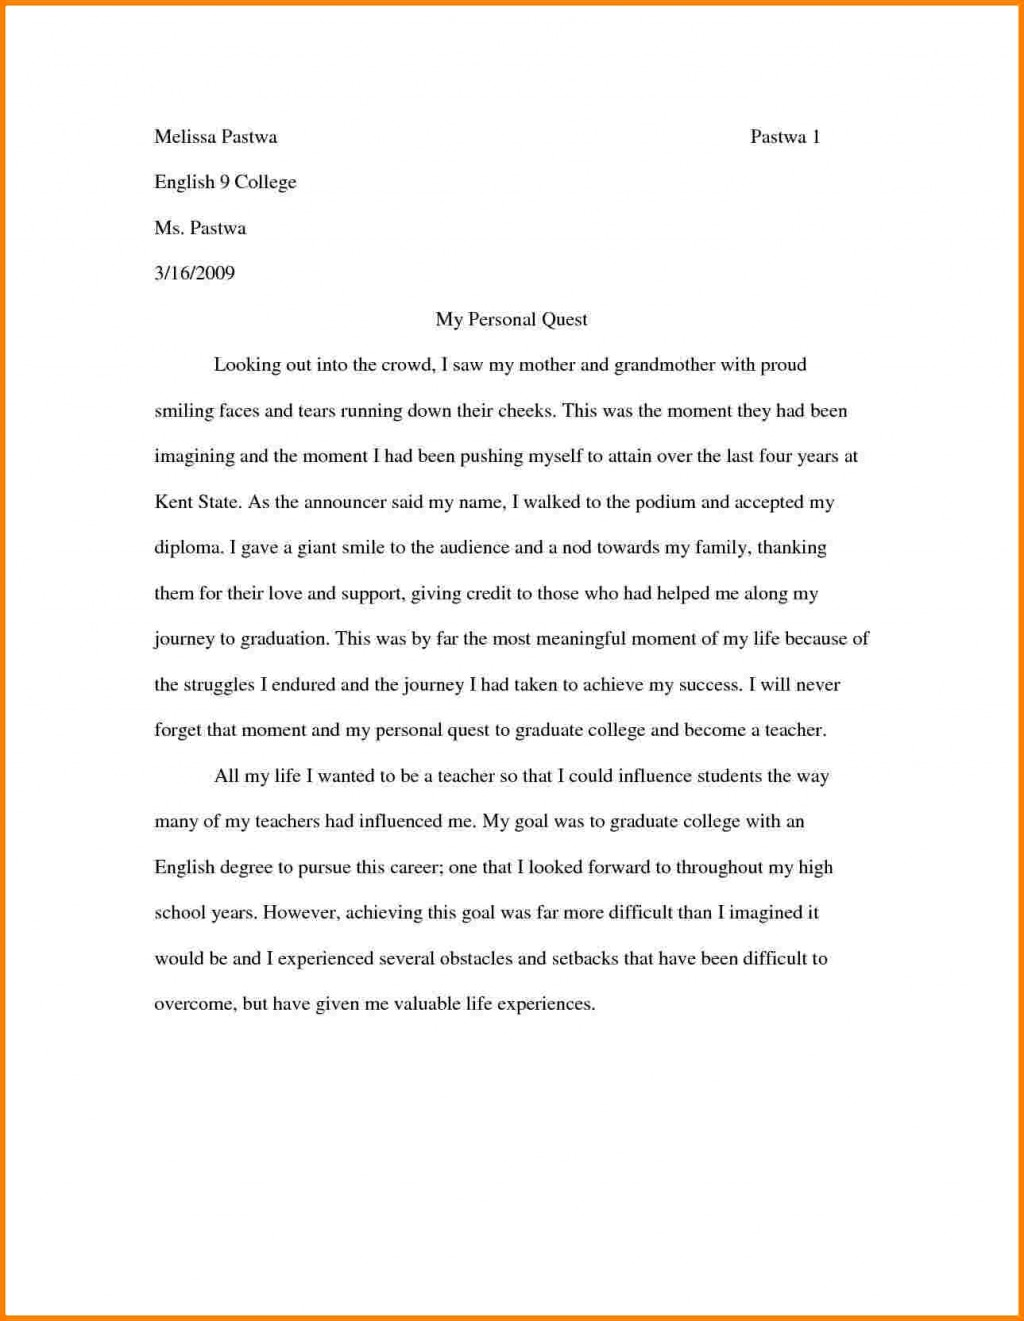 020 3341381556 How To Write Proposal20nt Essay Topics Buy Researchs Cheap Examples20 Good For Awesome Research Papers Interesting Paper History Topic College English High School Students In The Philippines Large